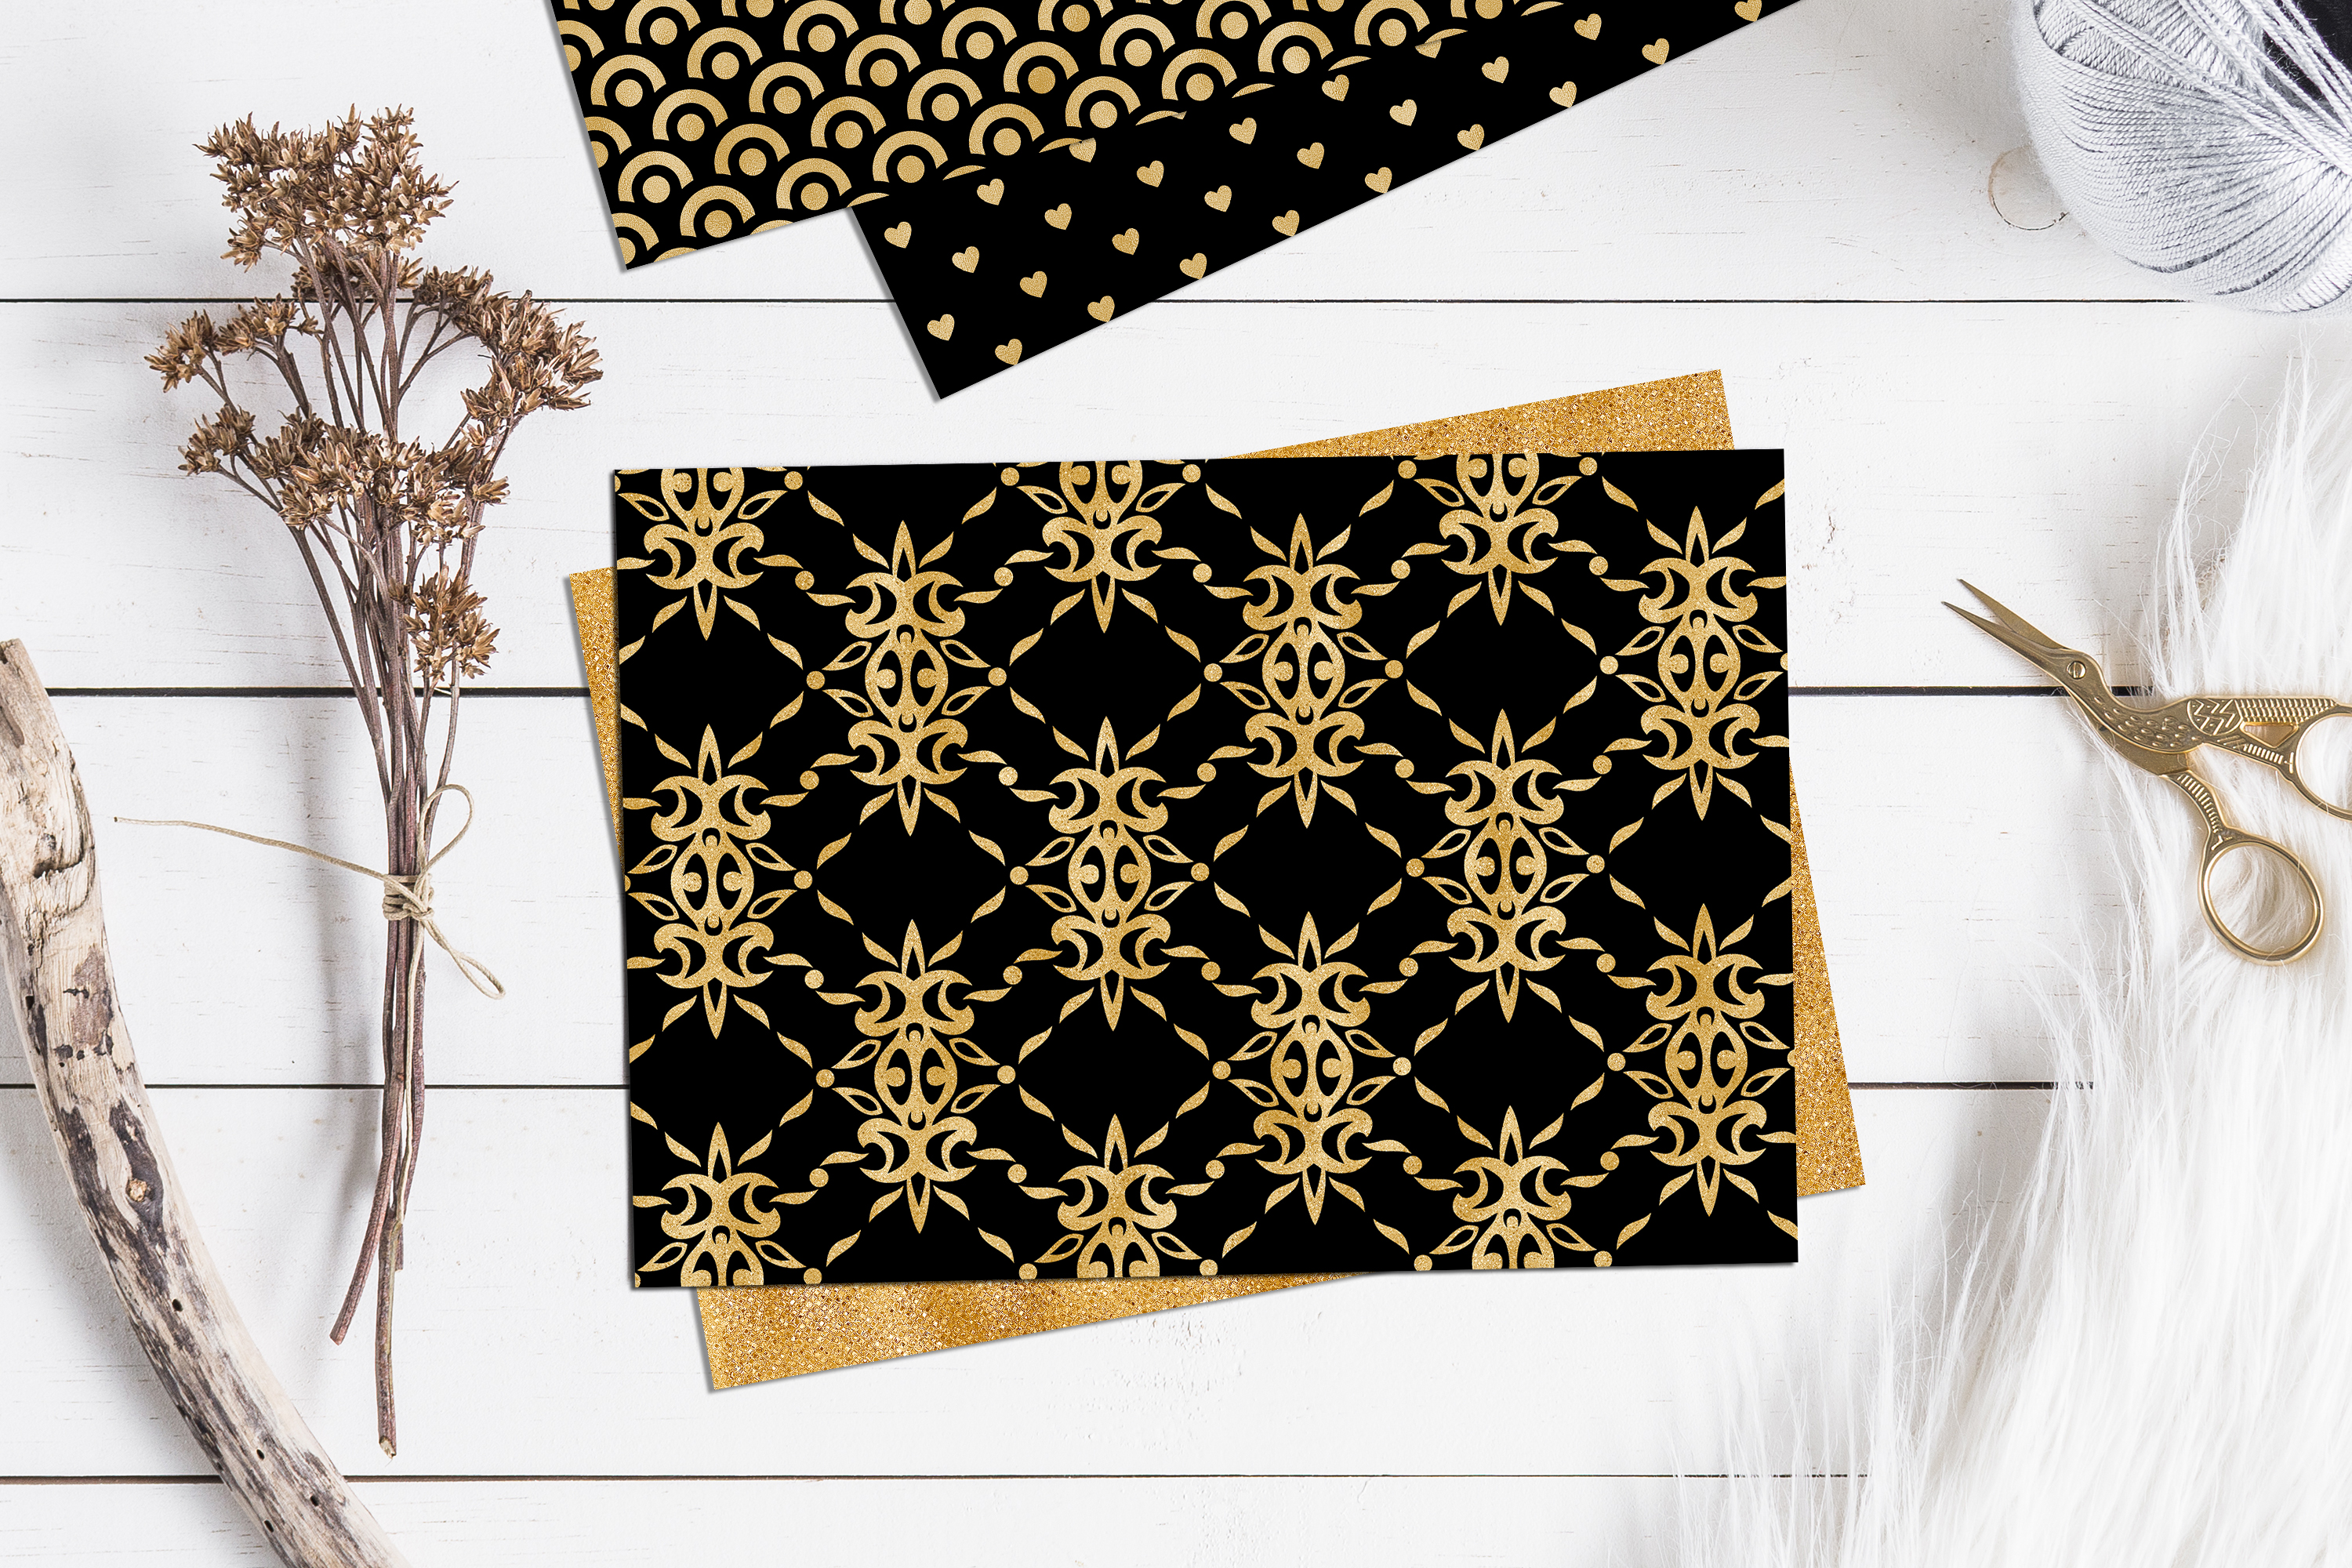 Black and Gold Seamless Papers - Damask & Geometric Patterns example image 2